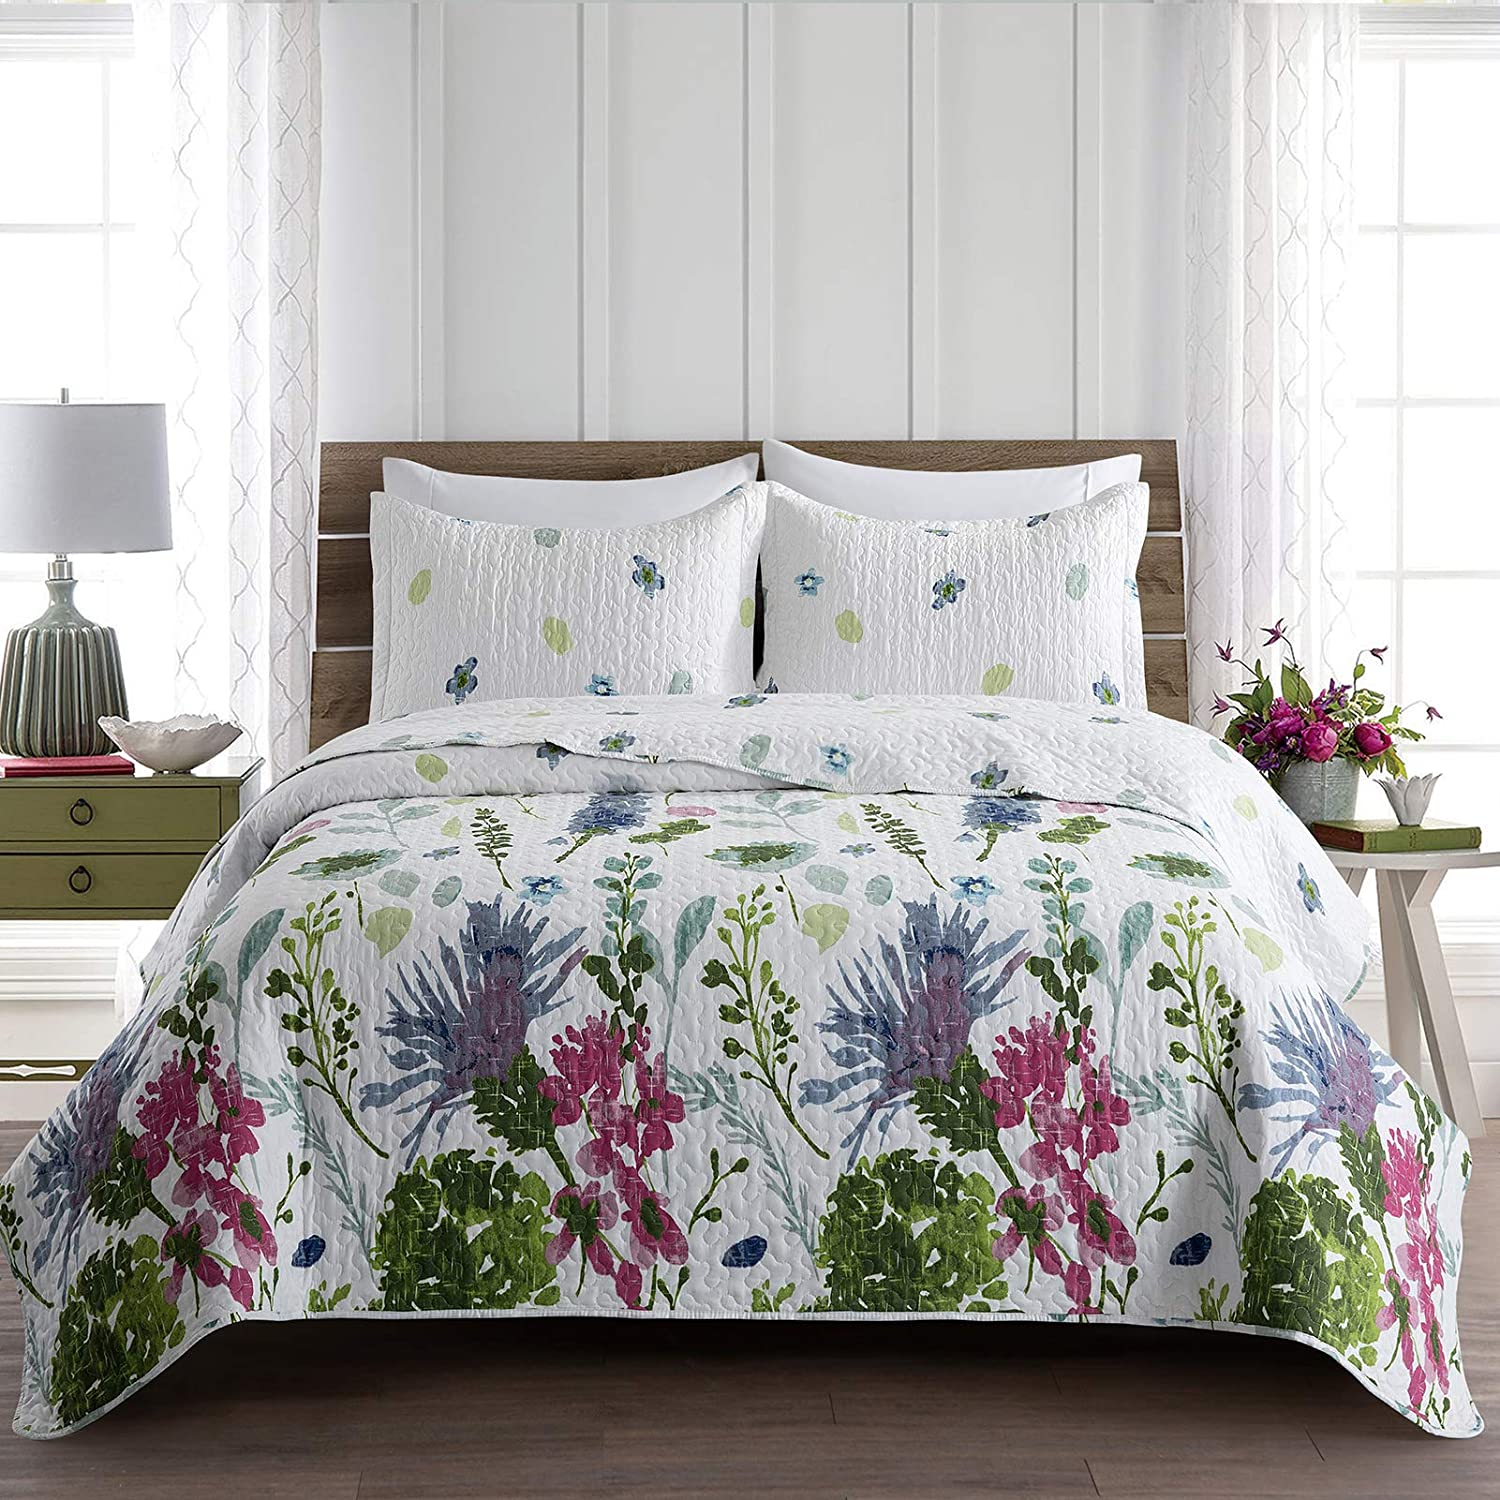 Max 84% OFF Lifeety Bed Quilt Set All High order Season Pattern Size King 1 Blue Floral